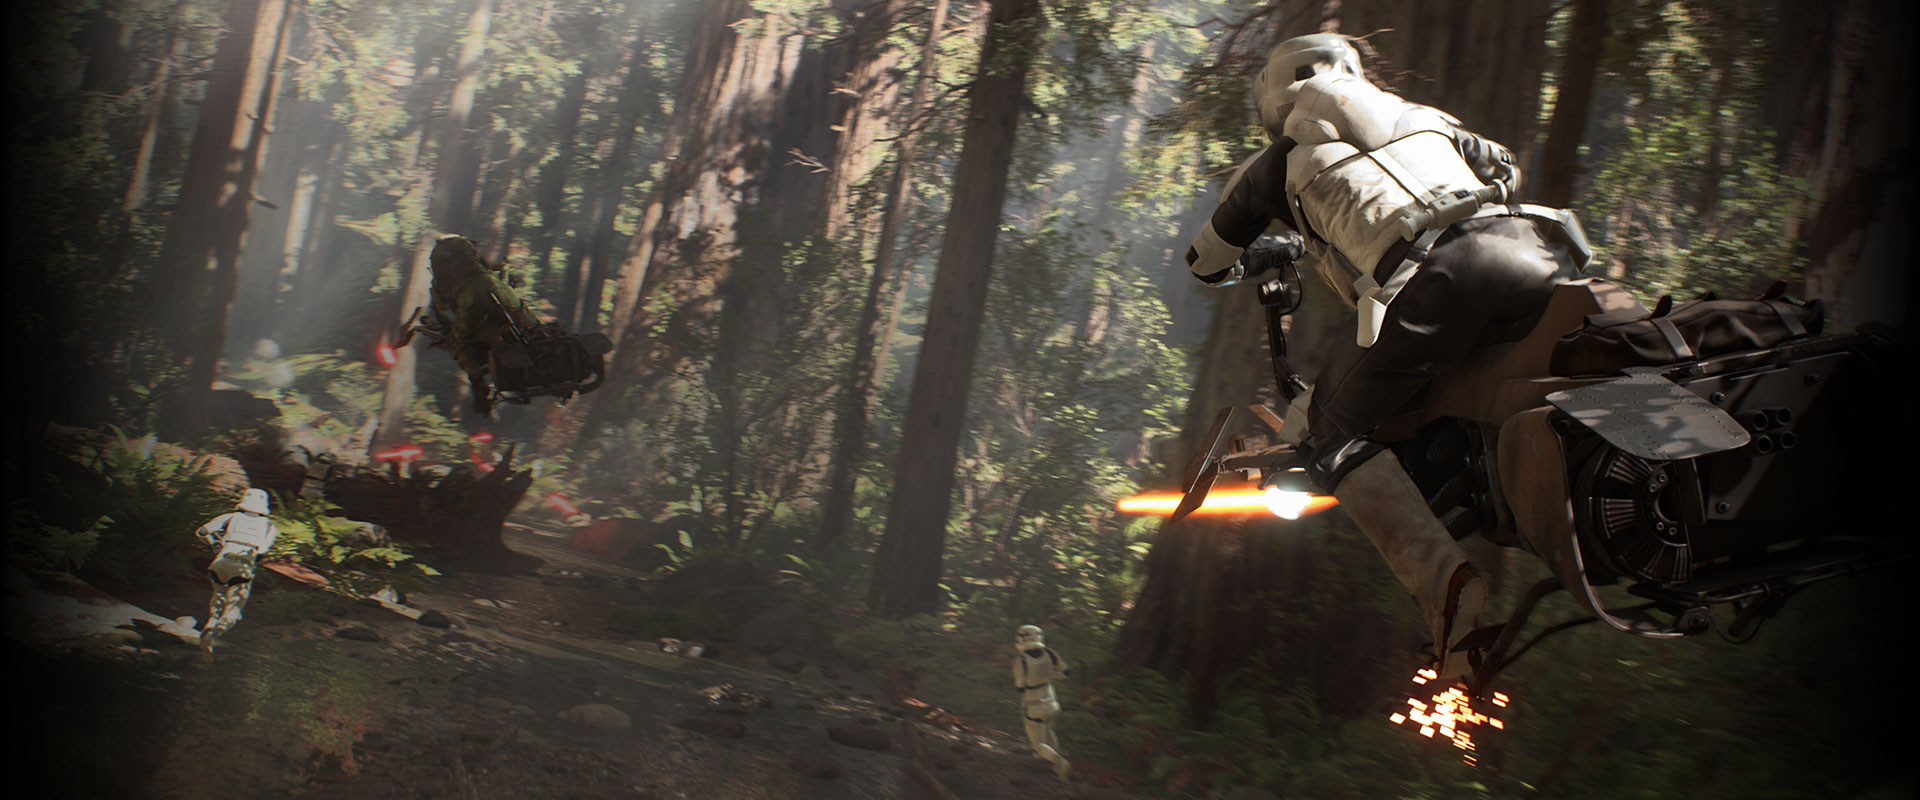 Star Wars: Battlefront Trailer Confirms These Classic Characters And Locations #32723